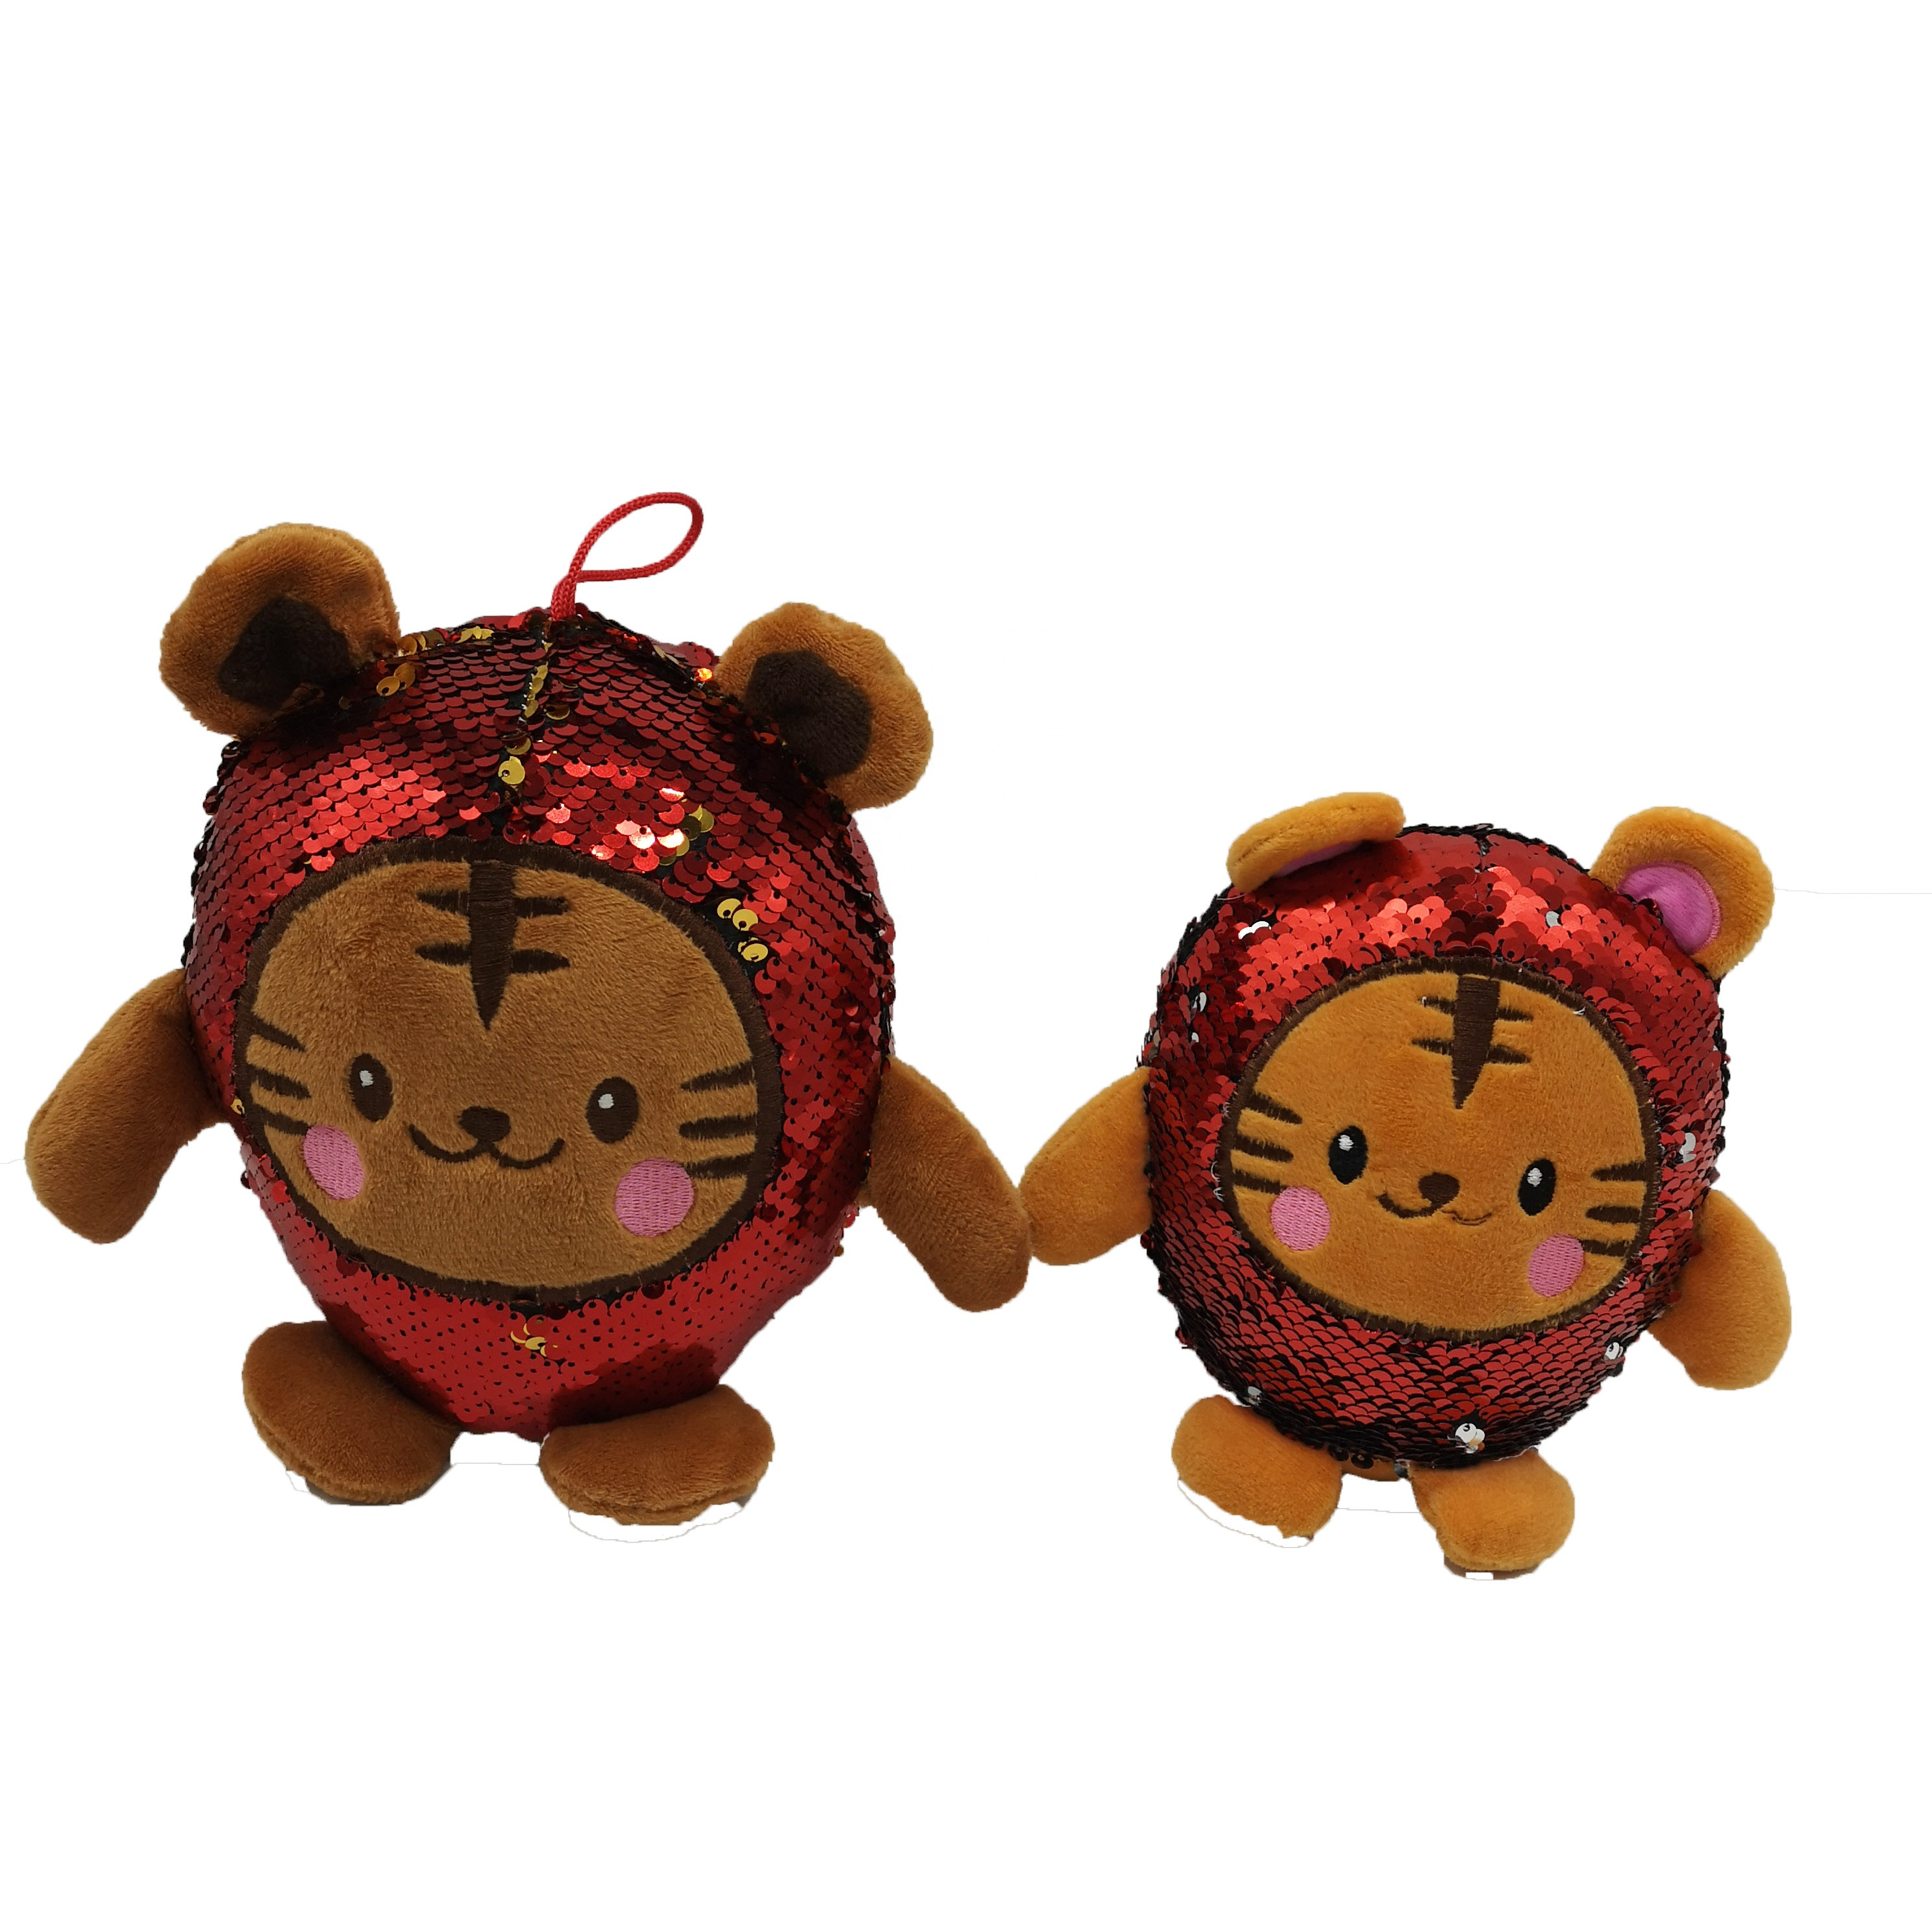 Manufacture new design soft stuff plush toys sequin <strong>animals</strong> for kids gift